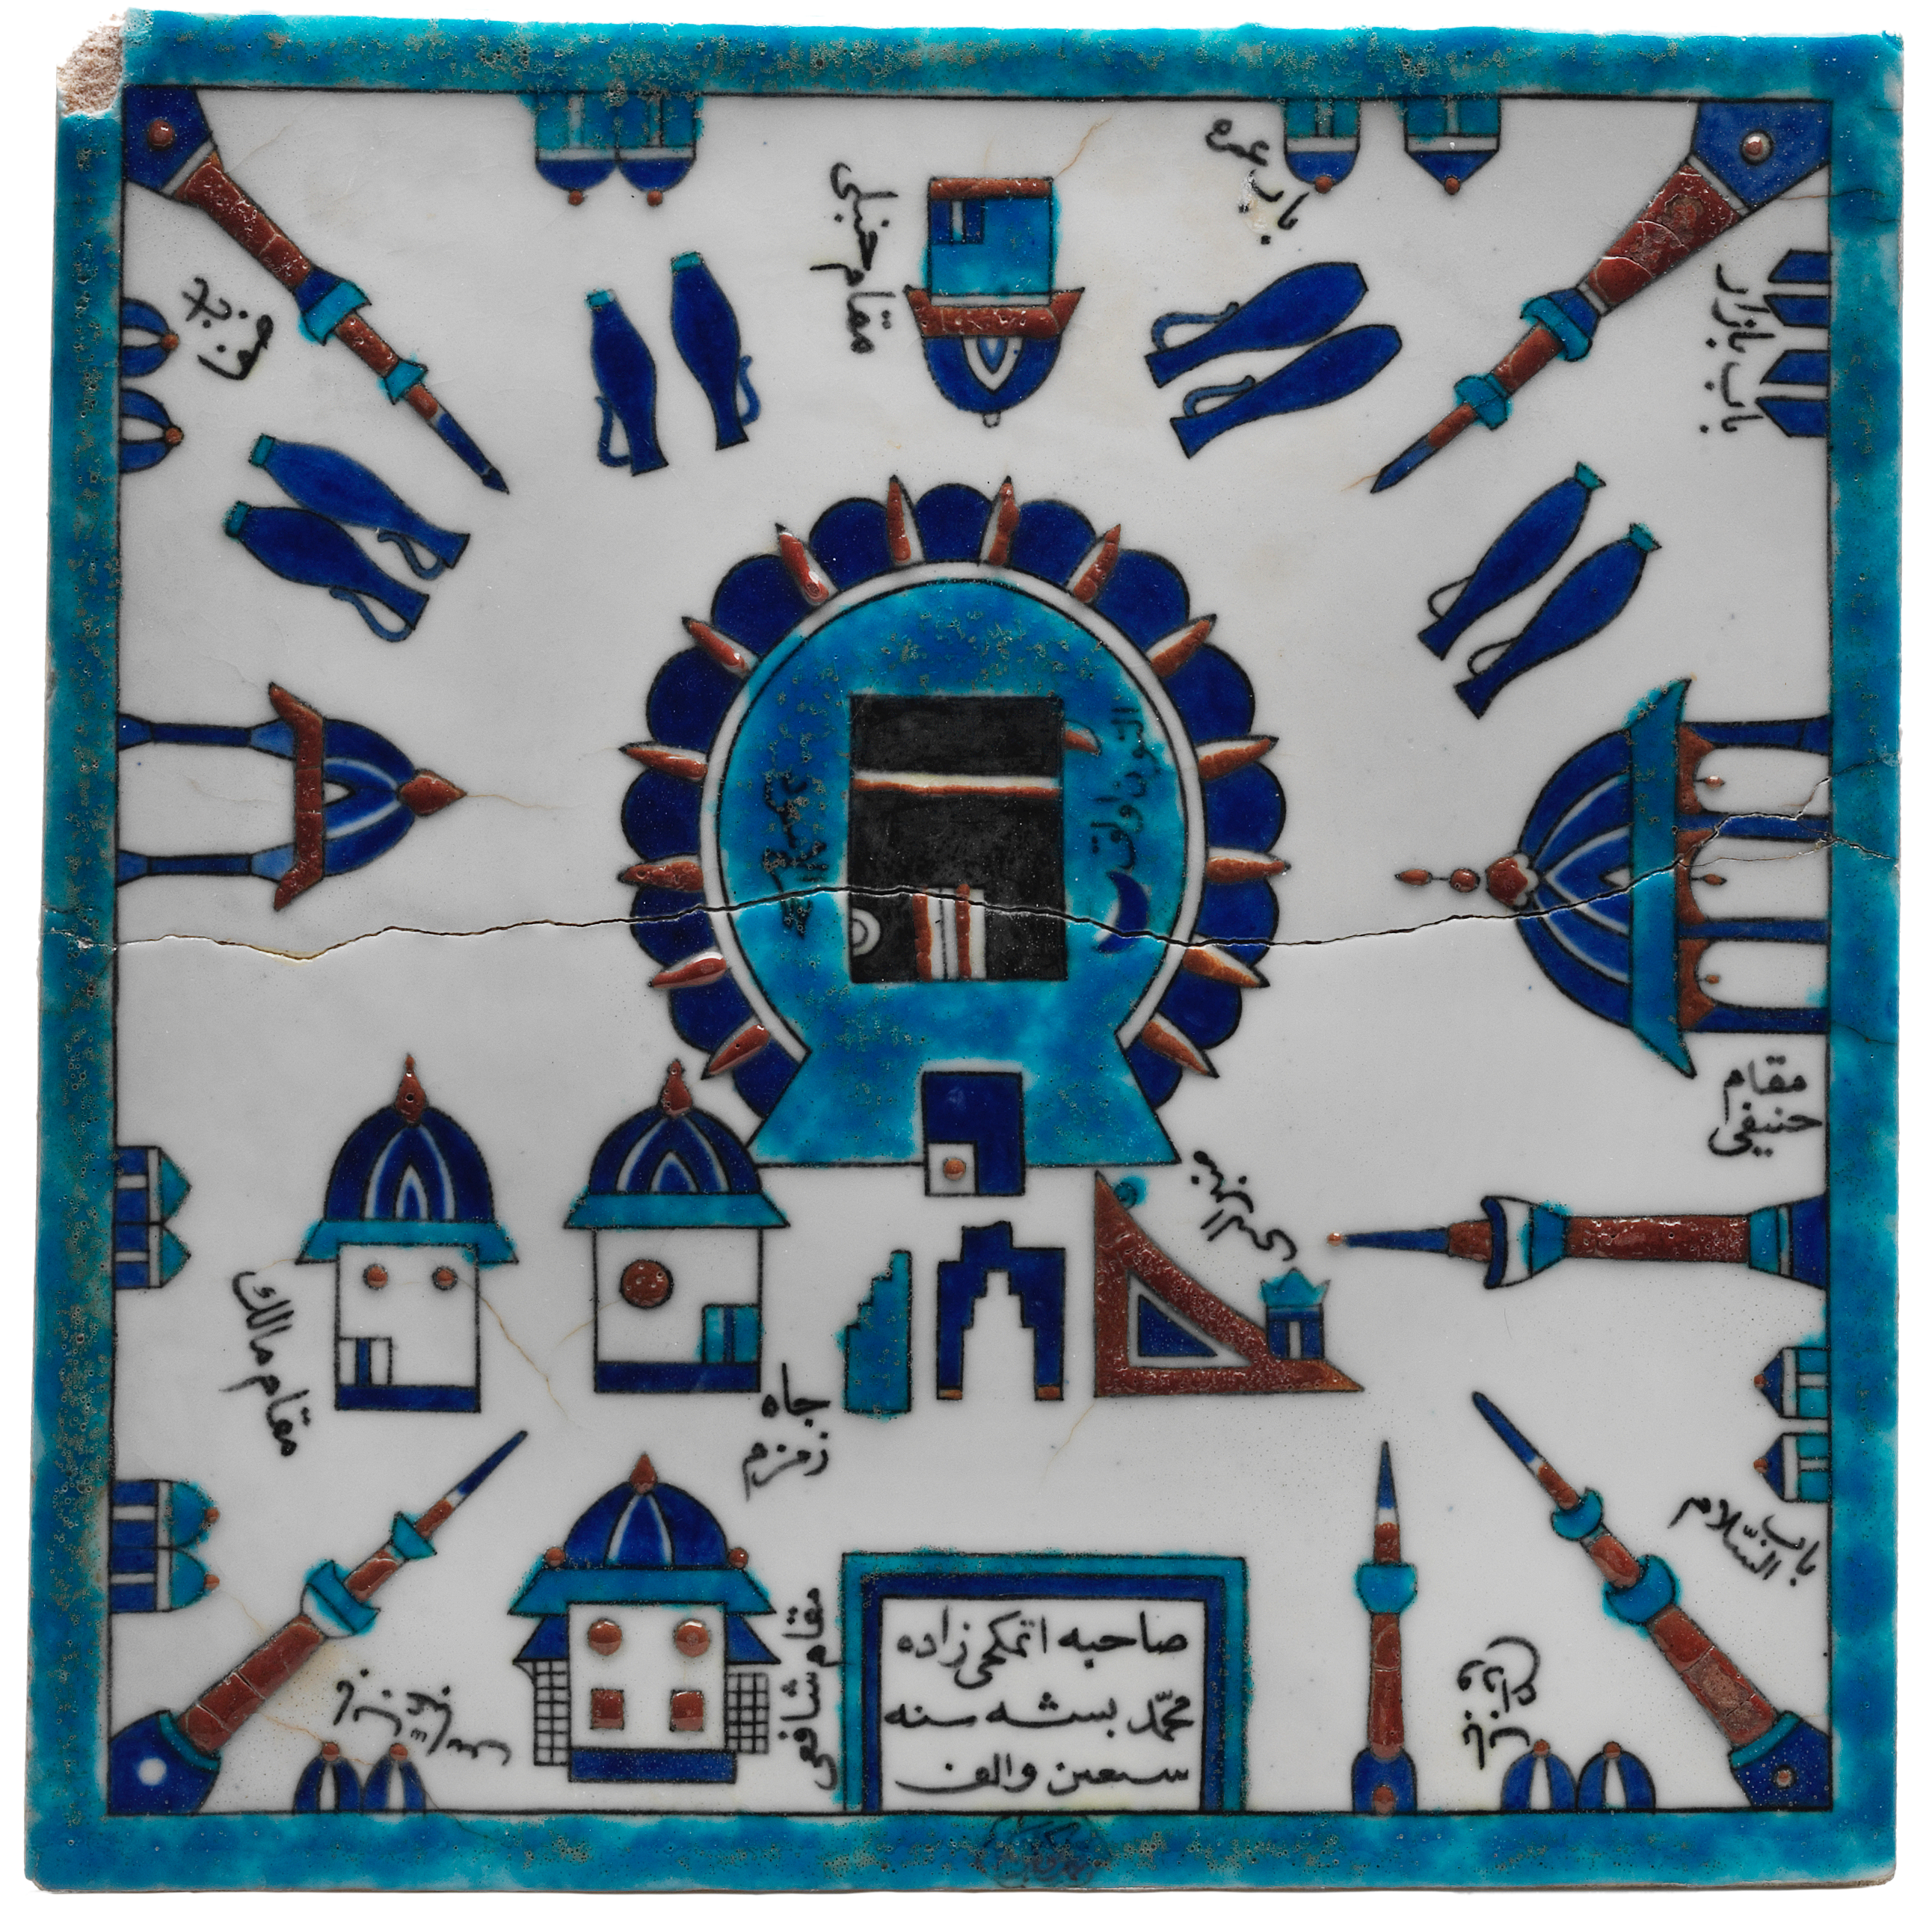 Mecca tile Inscribed by its owner Etmekçi-zadeh Pasha